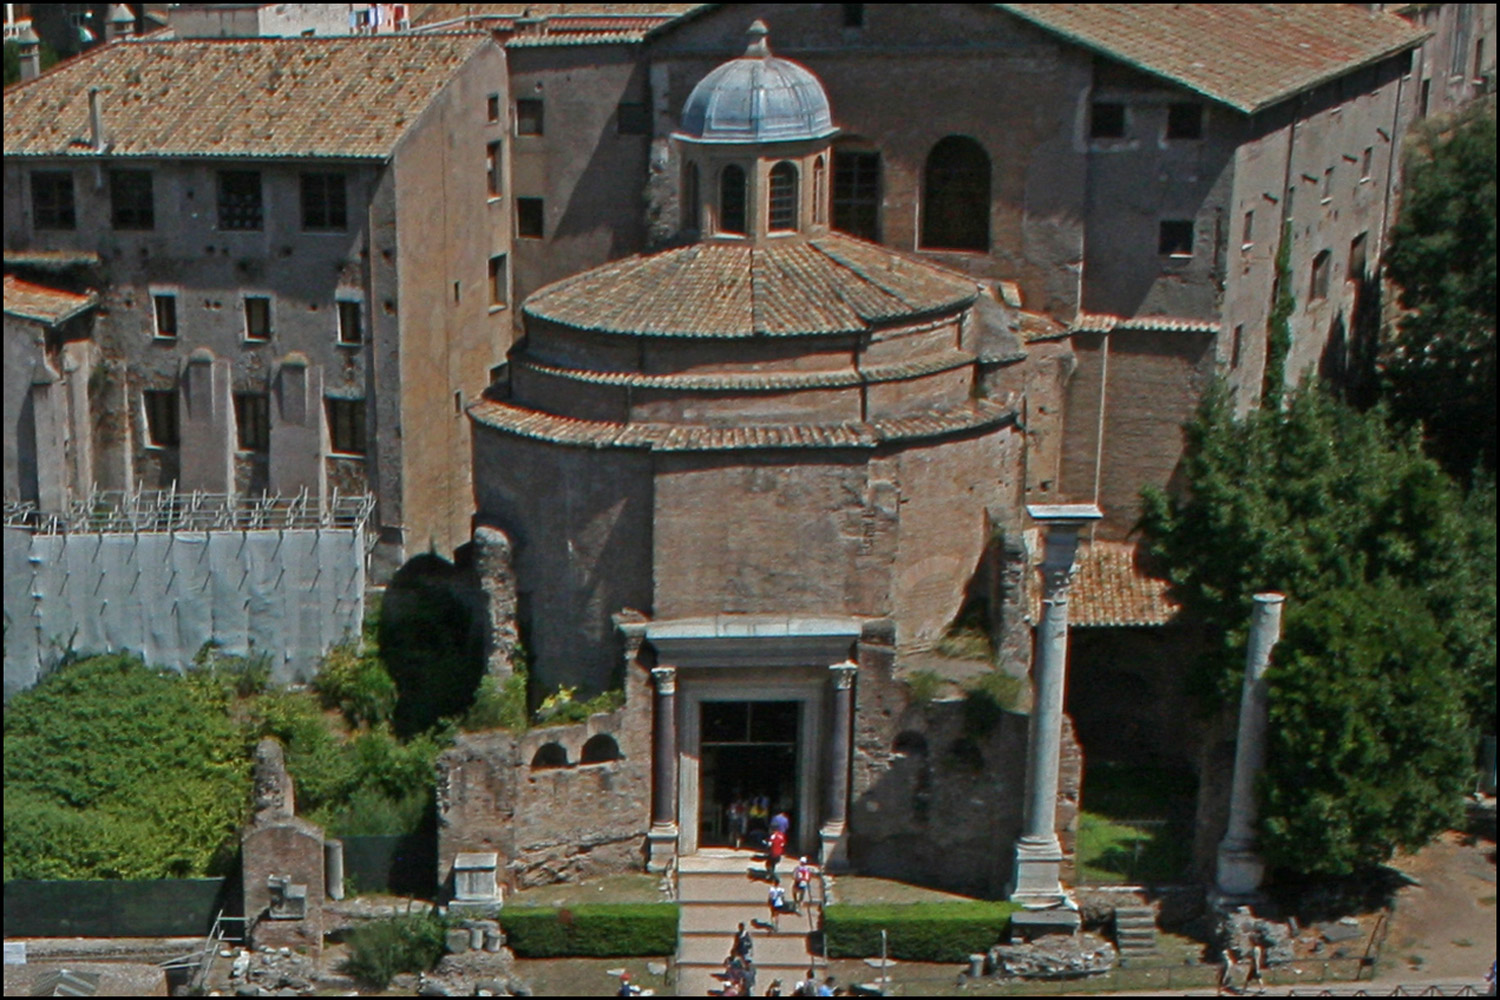 The Temple of Divus Romulus